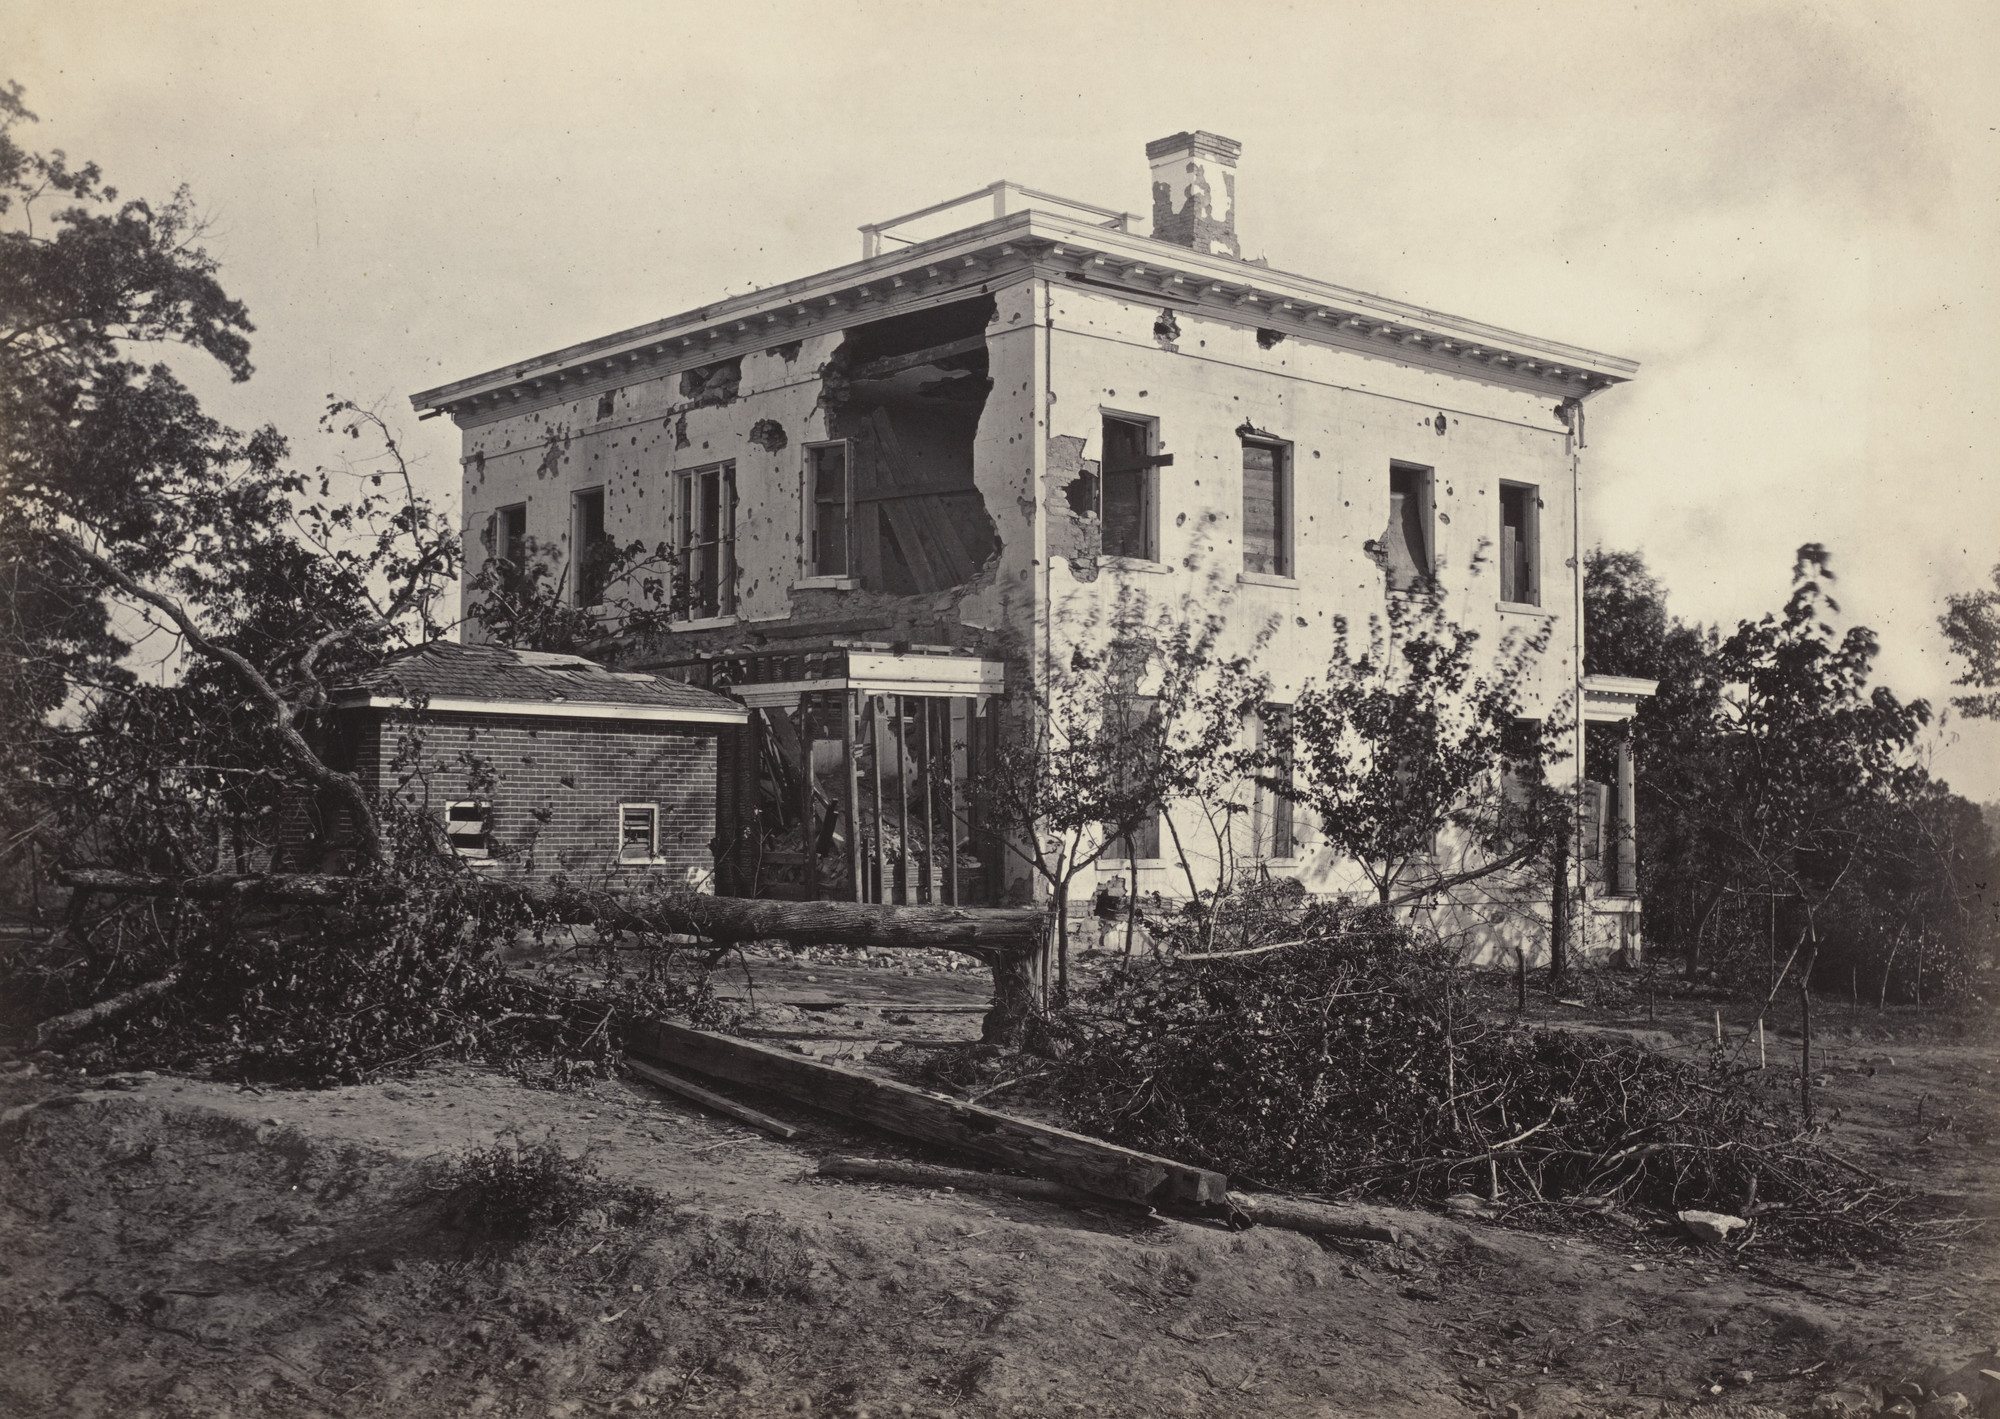 George Barnard. The Potter House, Atlanta from the album Photographic Views of Sherman's Campaign. 1864-65